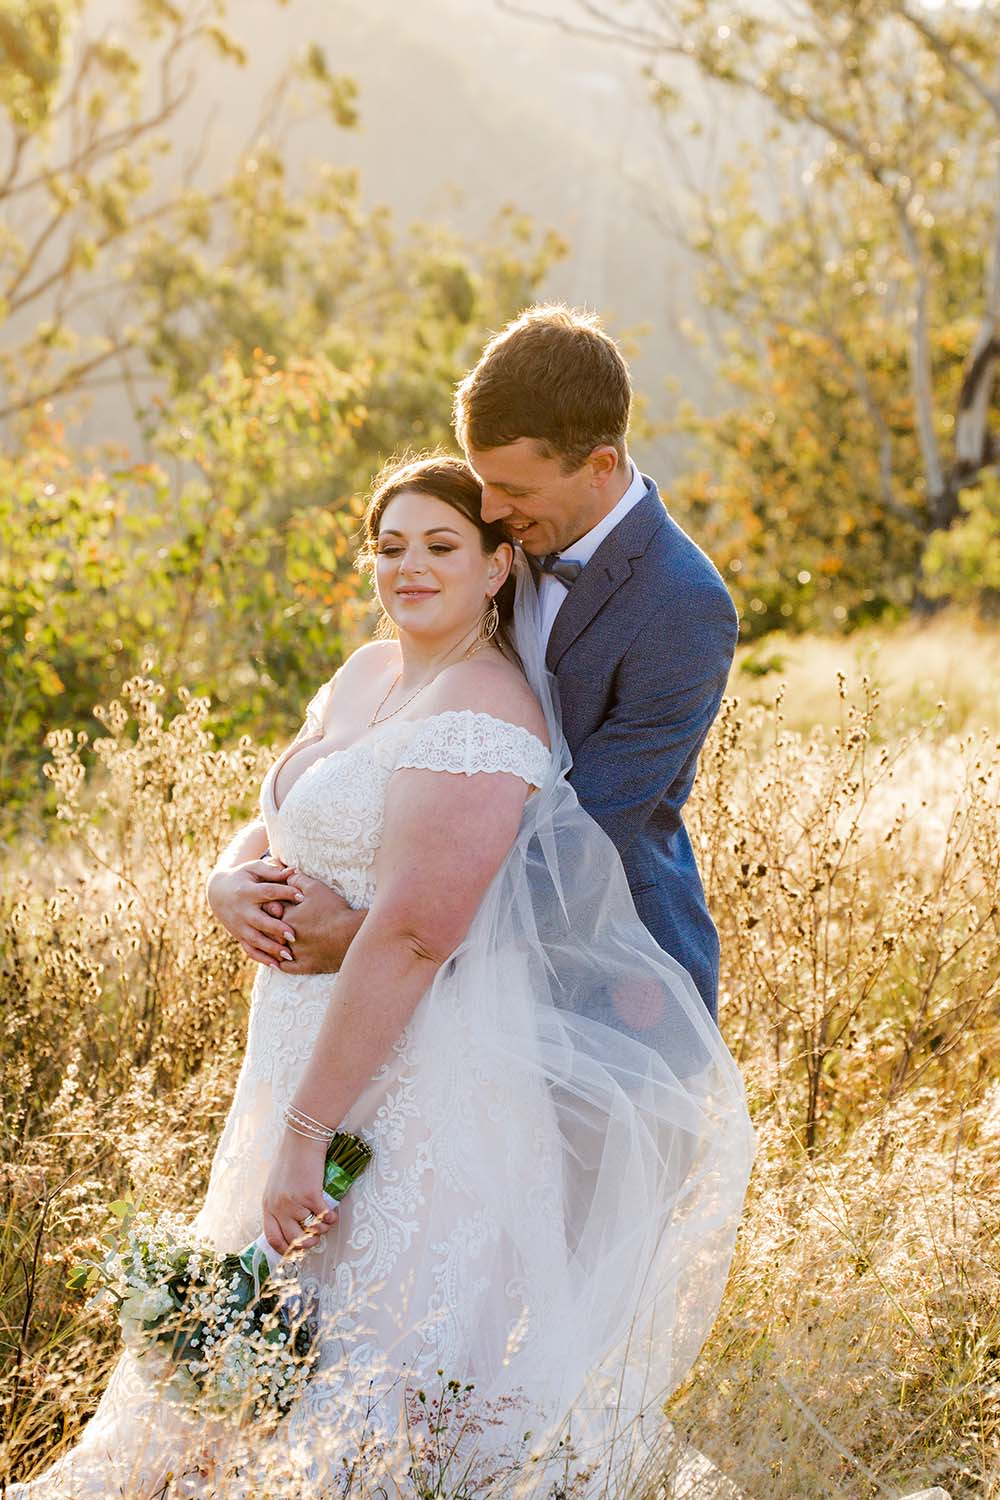 Wedding Photography - couple in field embracing